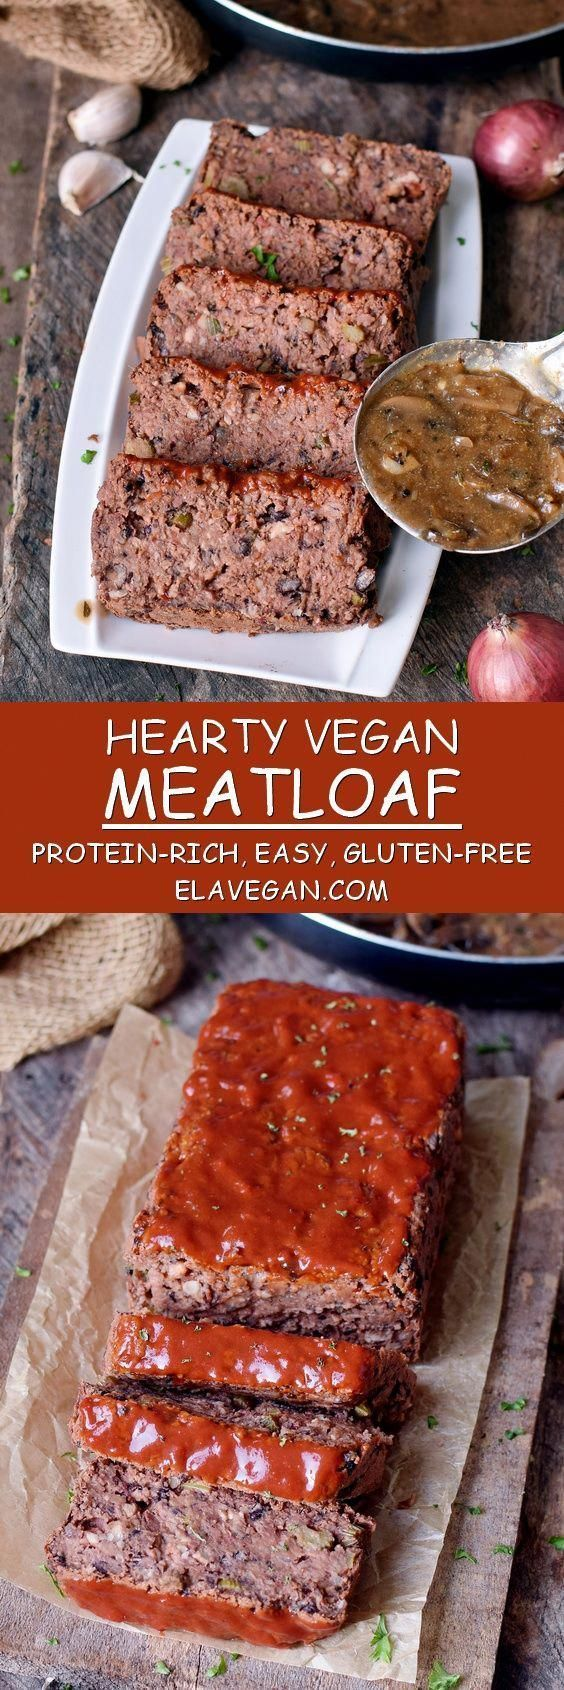 meatloaf is not only a great recipe for Christmas but also for any other occasion. It's hearty, flavorful, packed with protein, gluten-free (free of seitan), plant-based, and easy to make. Perfect for dinner or as a side dish! |